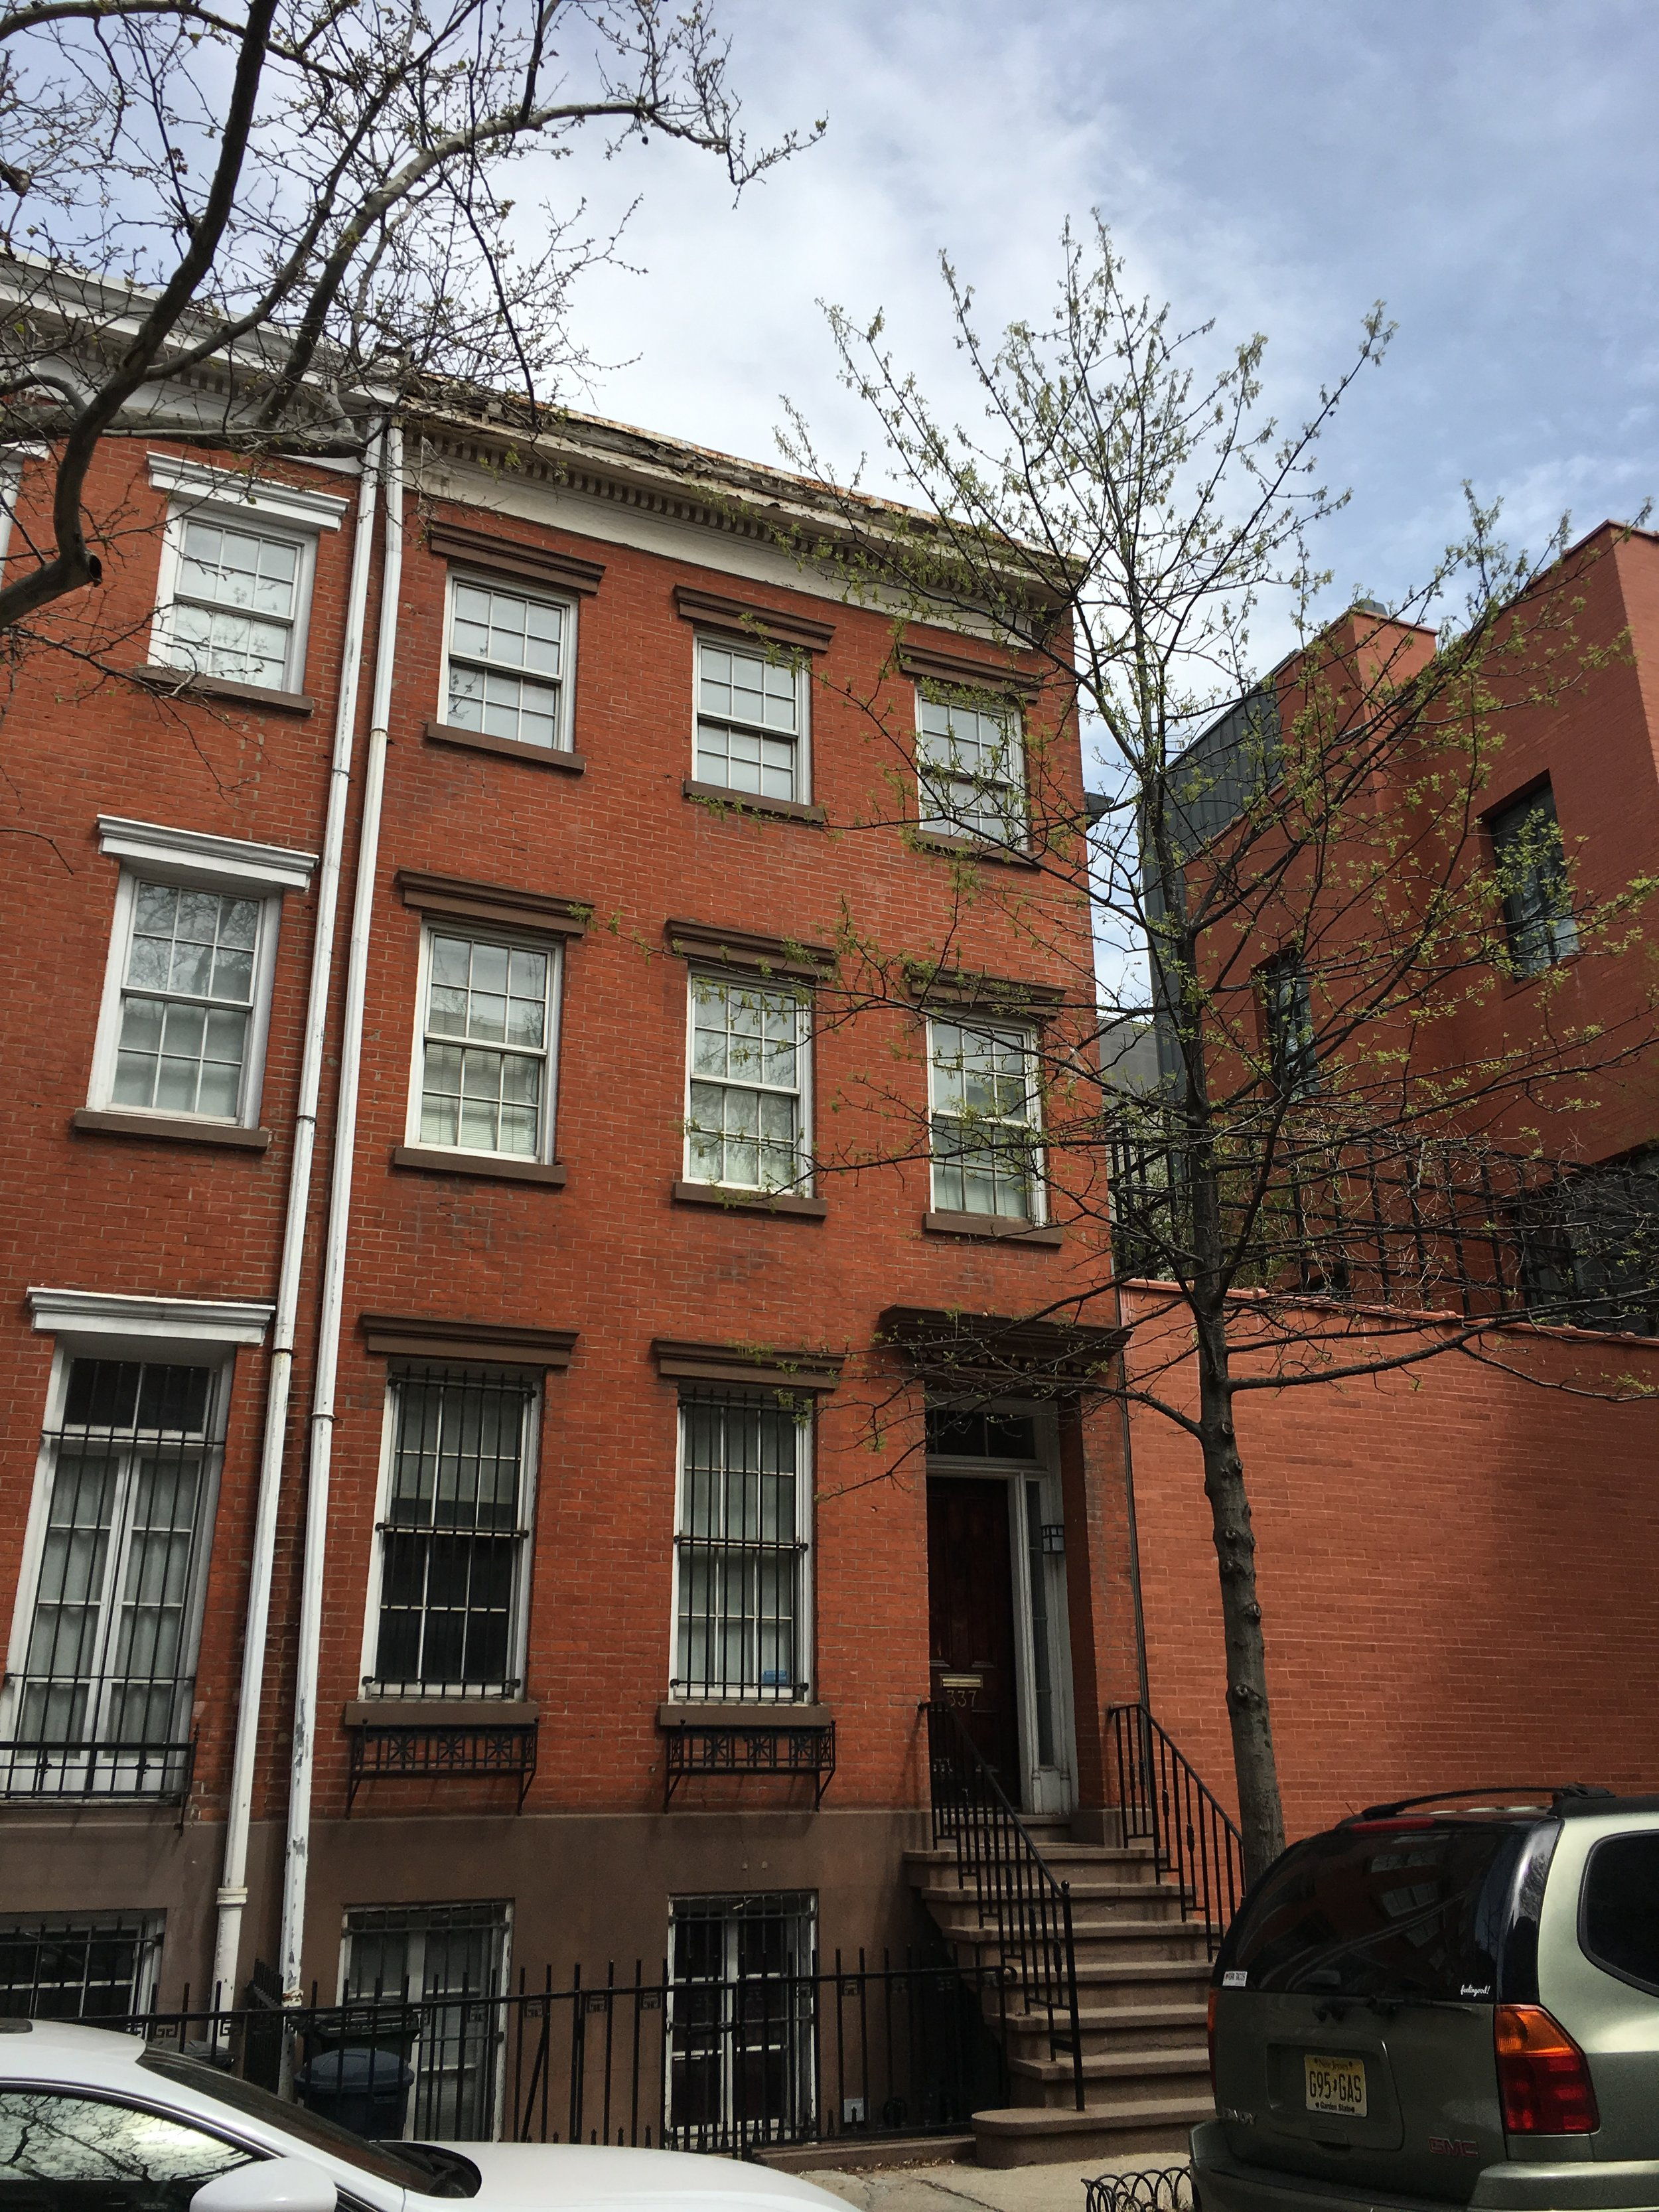 327 West 12th Street - Architect:Aari Ludvigsen3 story two family residence